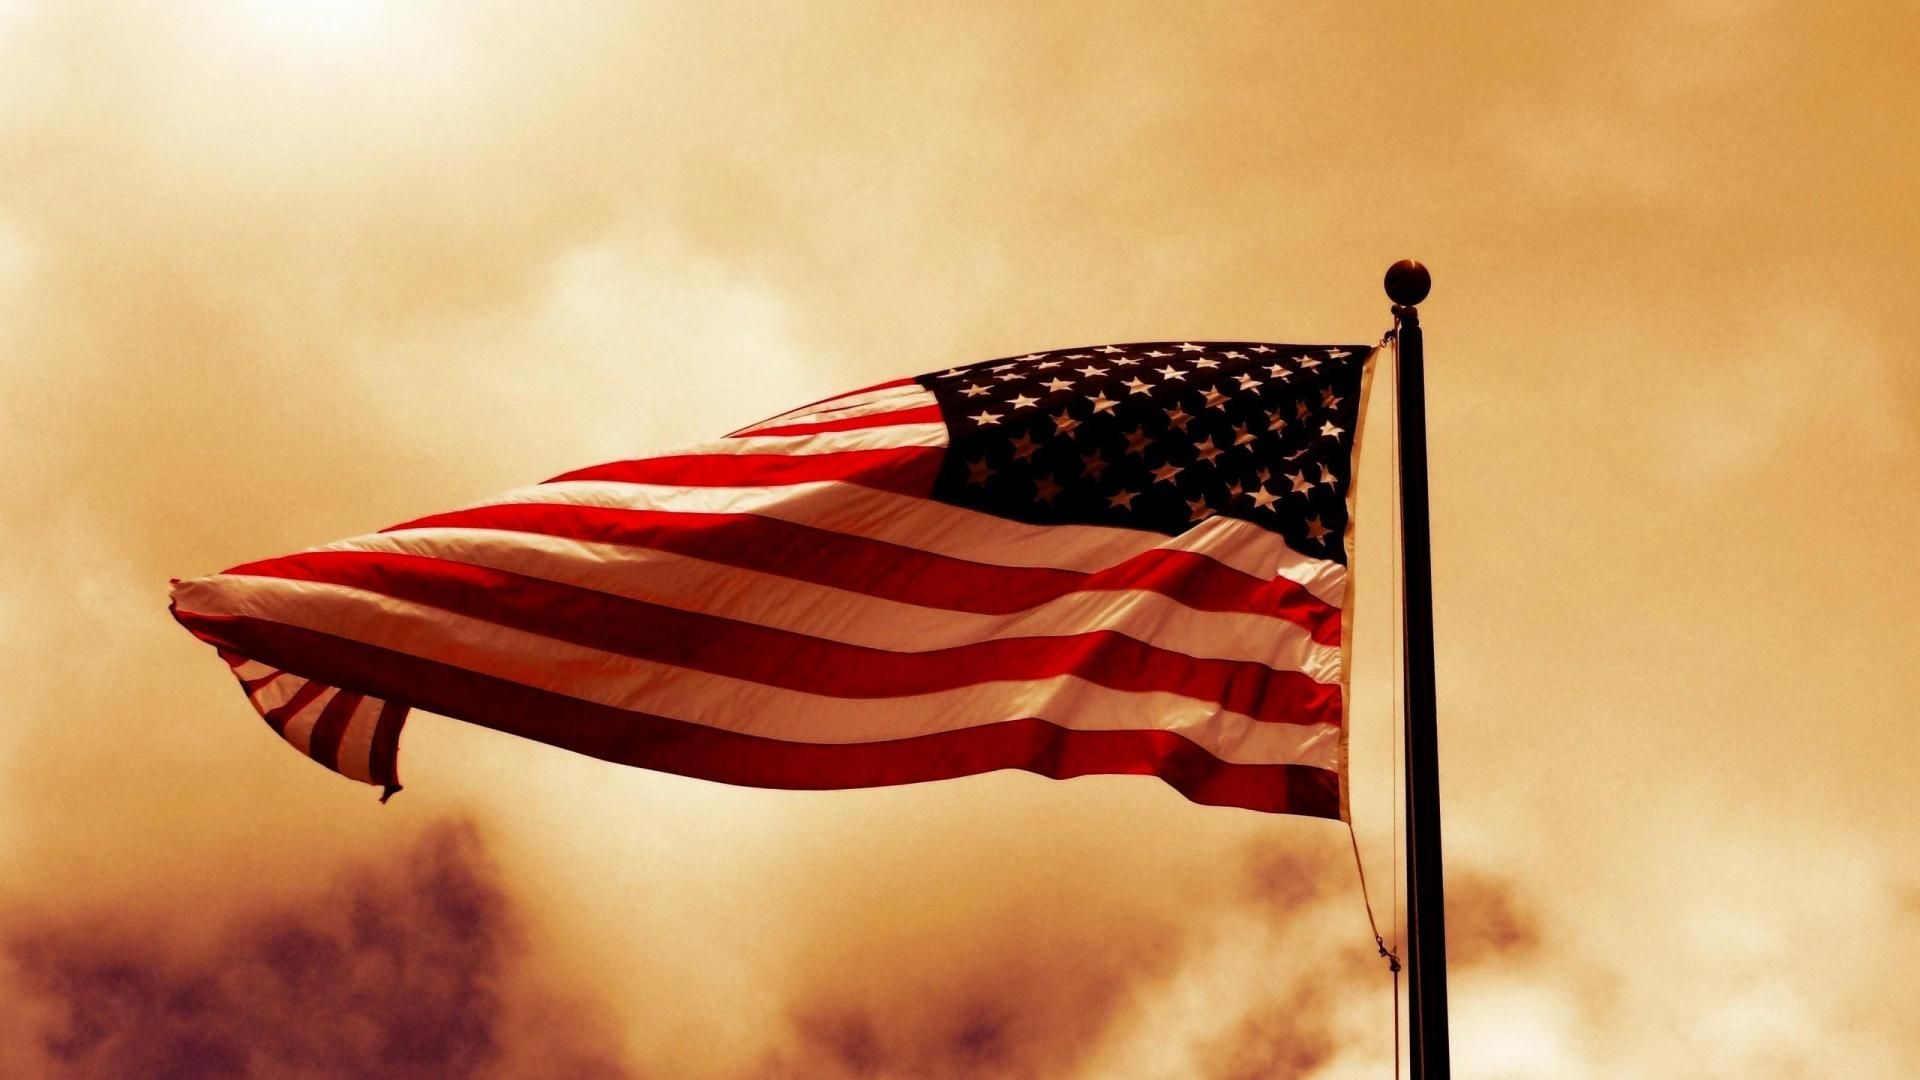 american background picture usa american flag background hd wallpaper of flag